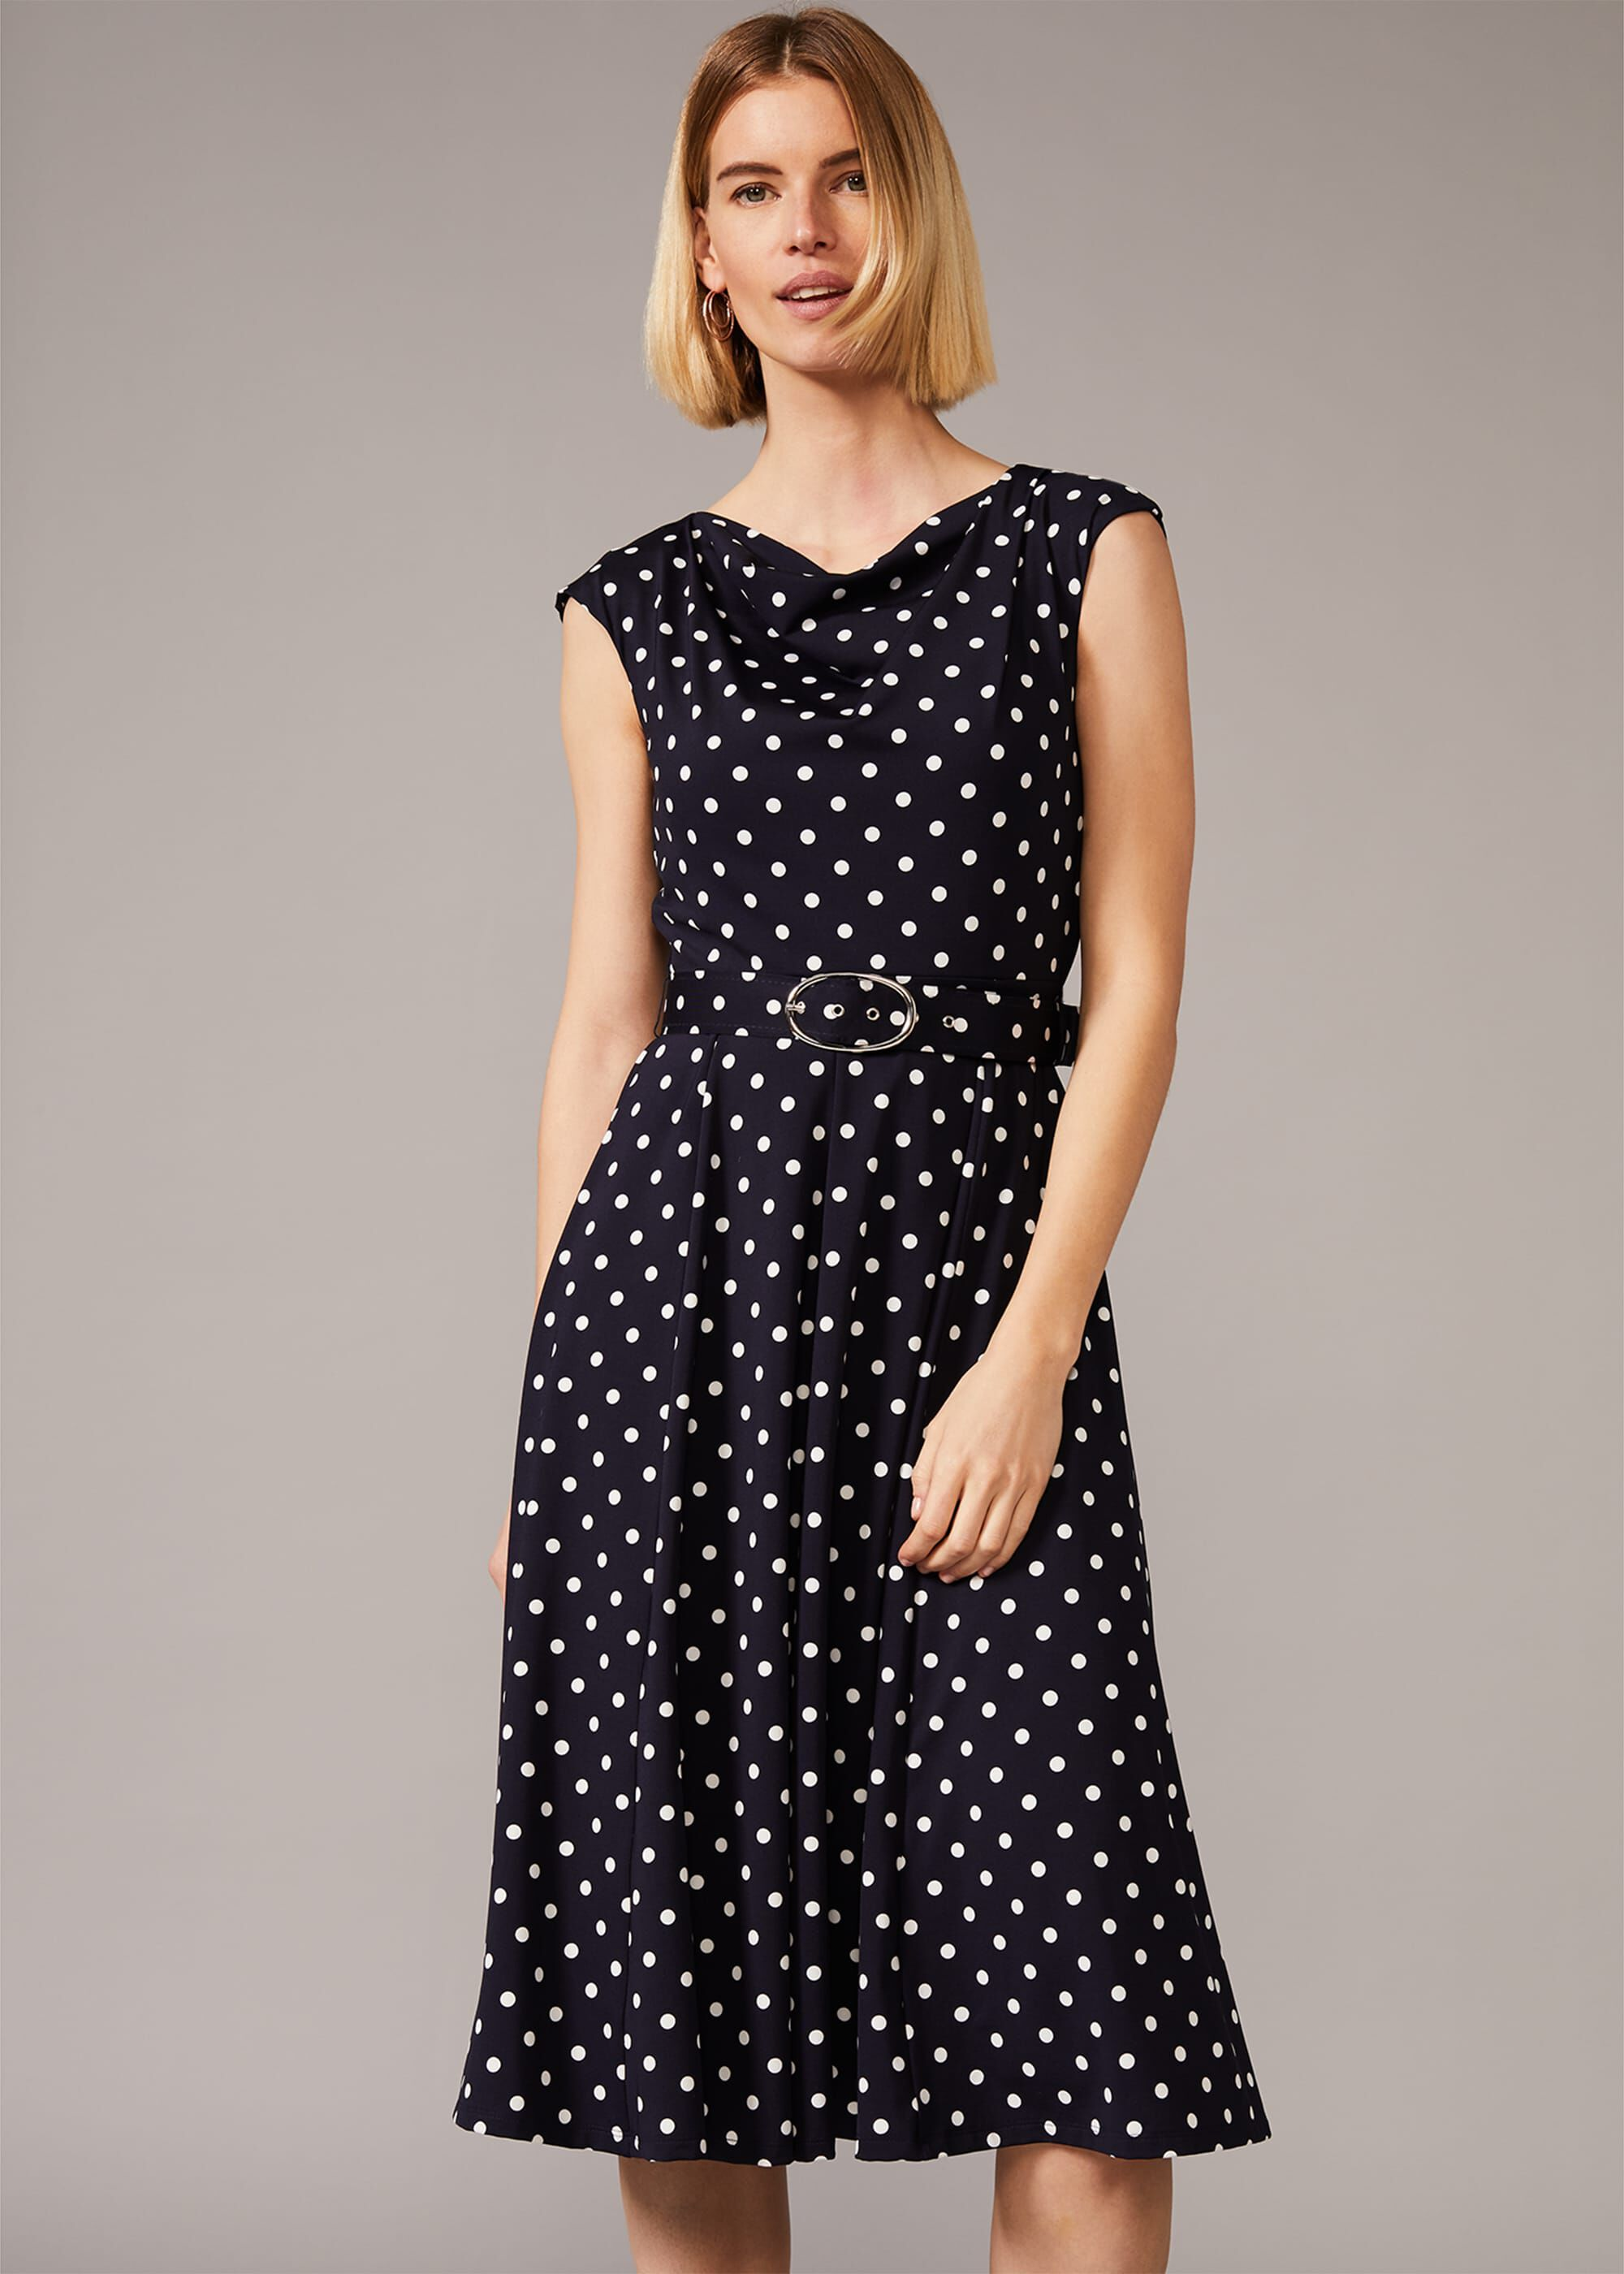 500 Vintage Style Dresses for Sale | Vintage Inspired Dresses Phase Eight Zalika Spot Cowl Neck Belted Dress Blue Fit  Flare Occasion Dress £79.20 AT vintagedancer.com